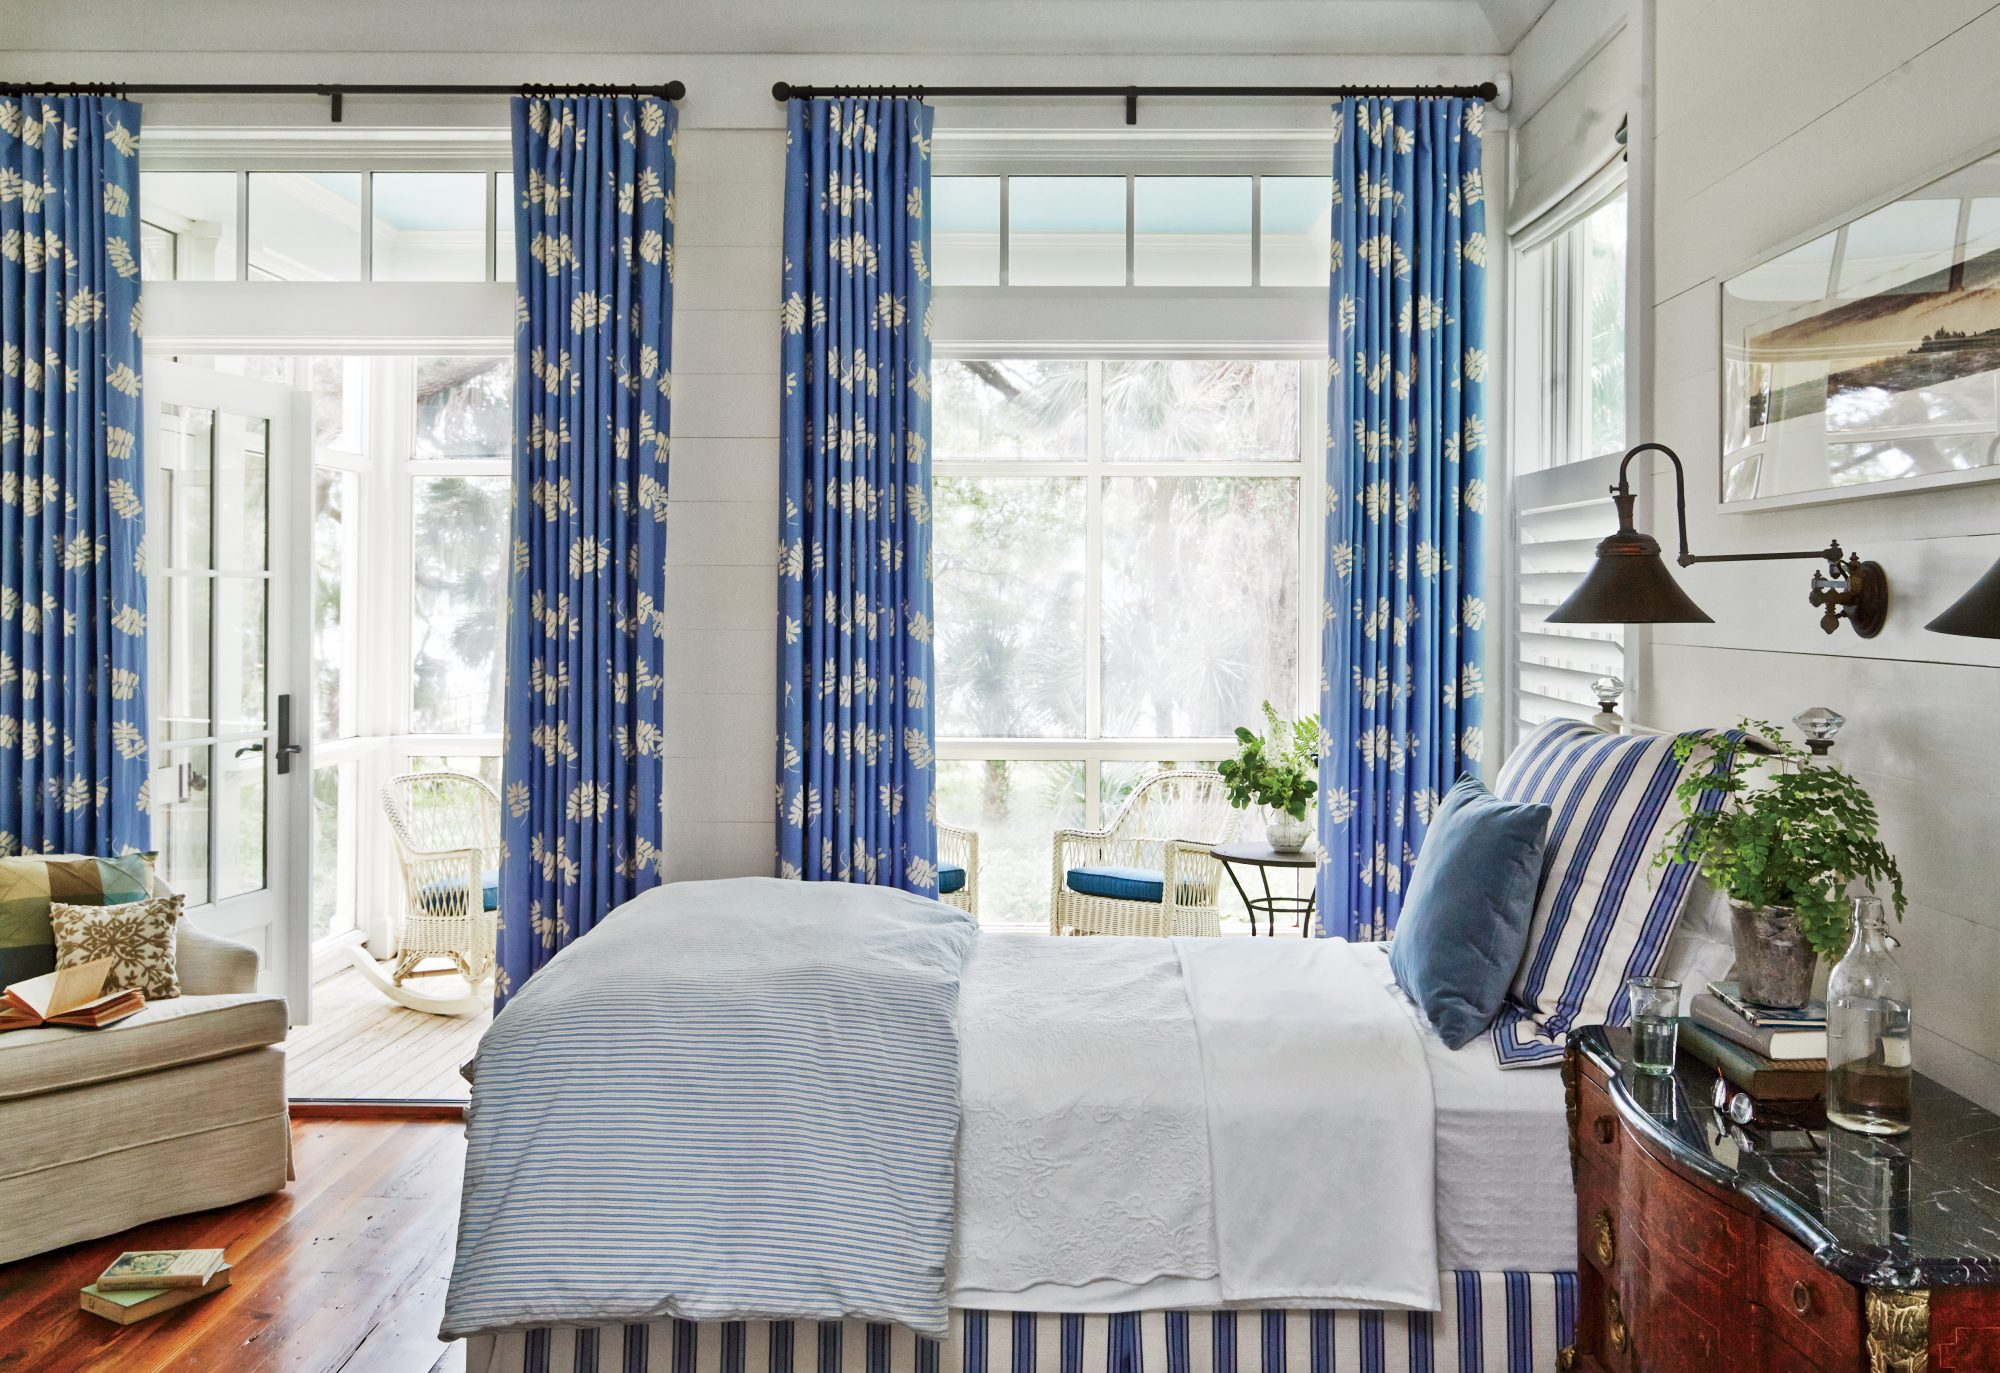 This Lowcountry bunkhouse bedroom is all about classic elements (reclaimed wood floors, large windows, and shiplap walls) and shades.